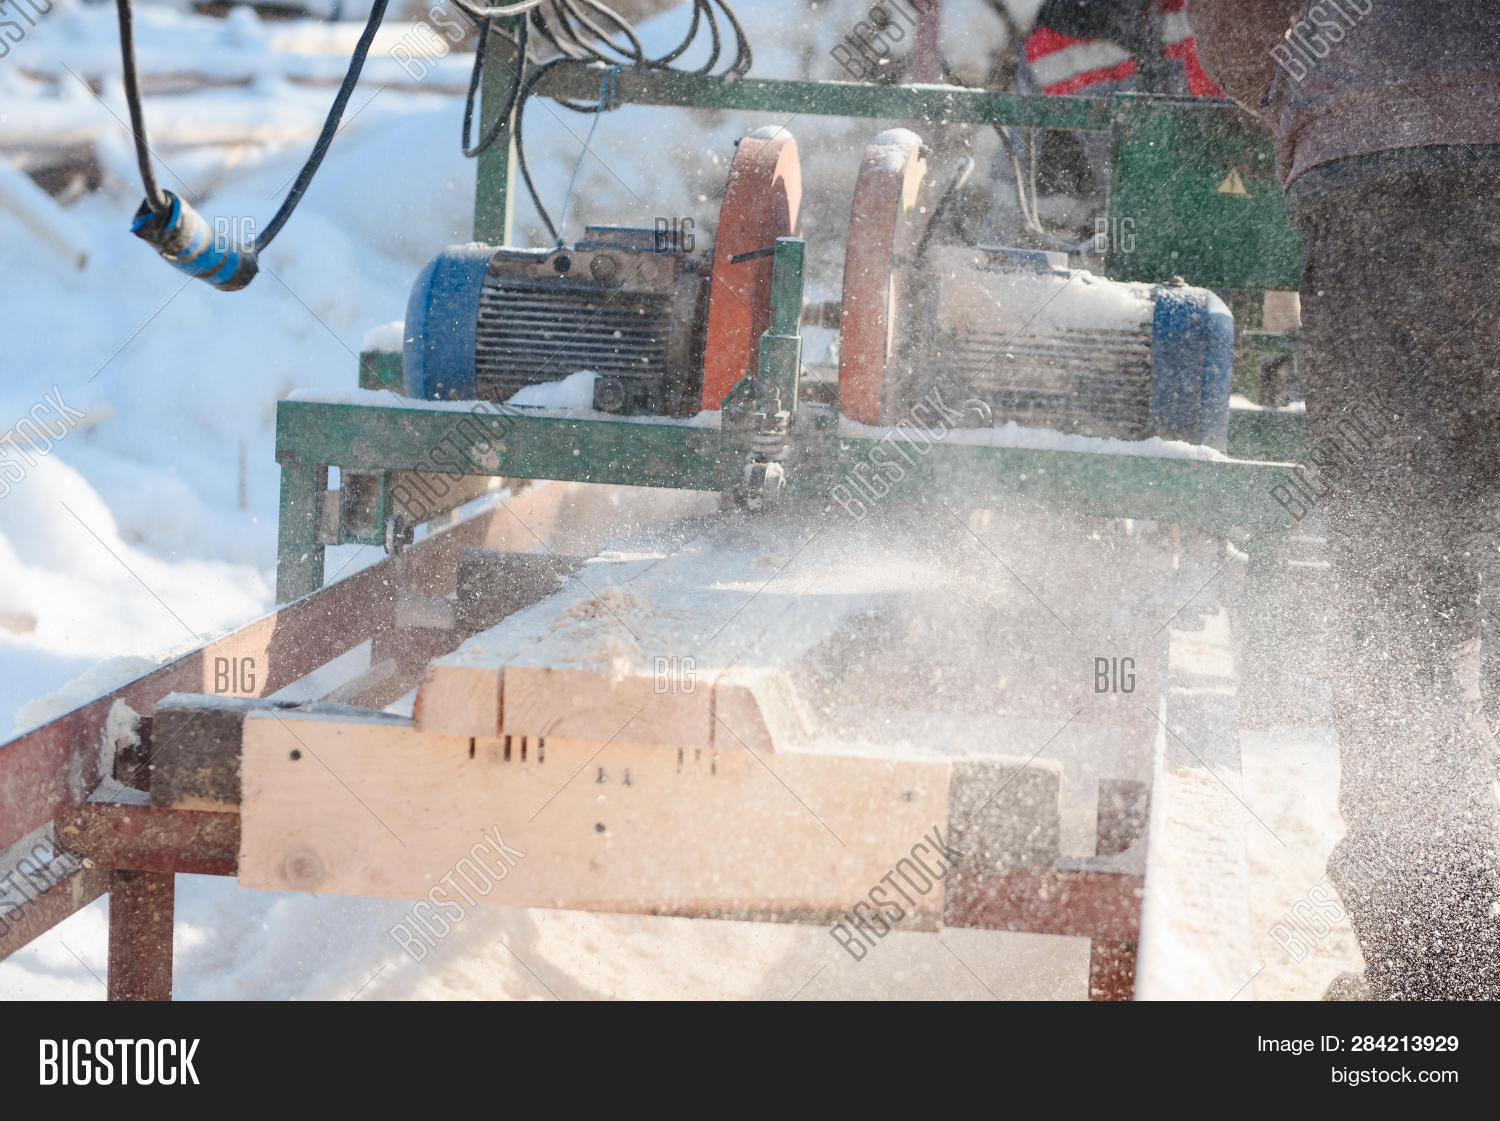 Sawing Boards On Image & Photo (Free Trial) | Bigstock